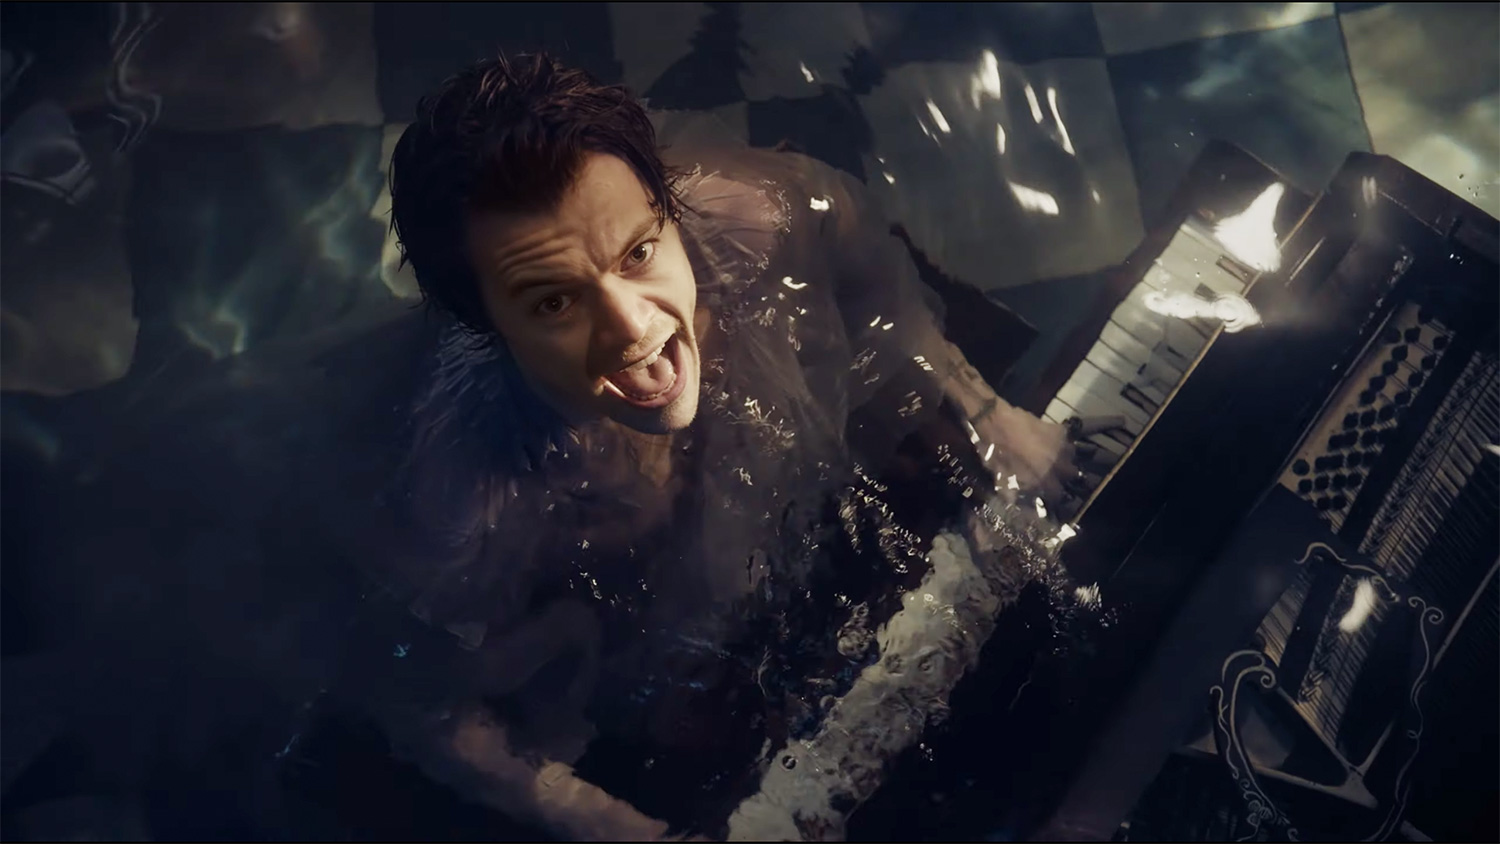 Harry Styles Gets Submerged Underwater as He Reflects on Lost Love in 'Falling' Music Video